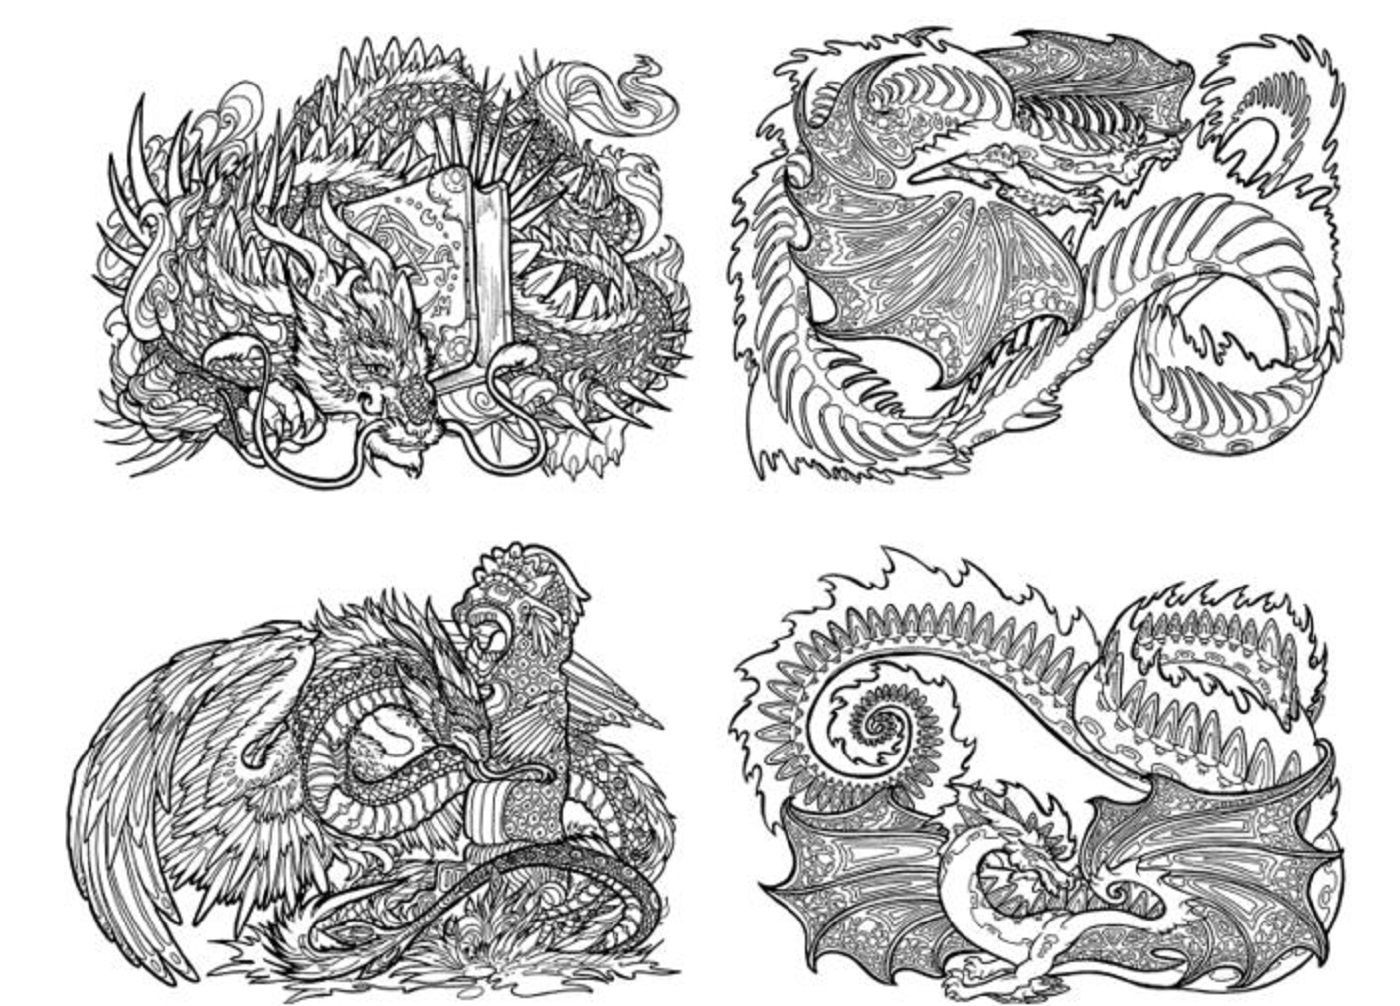 Coloring Book For Adults Dragon Adventure Stress Relief Animal Color Patterns